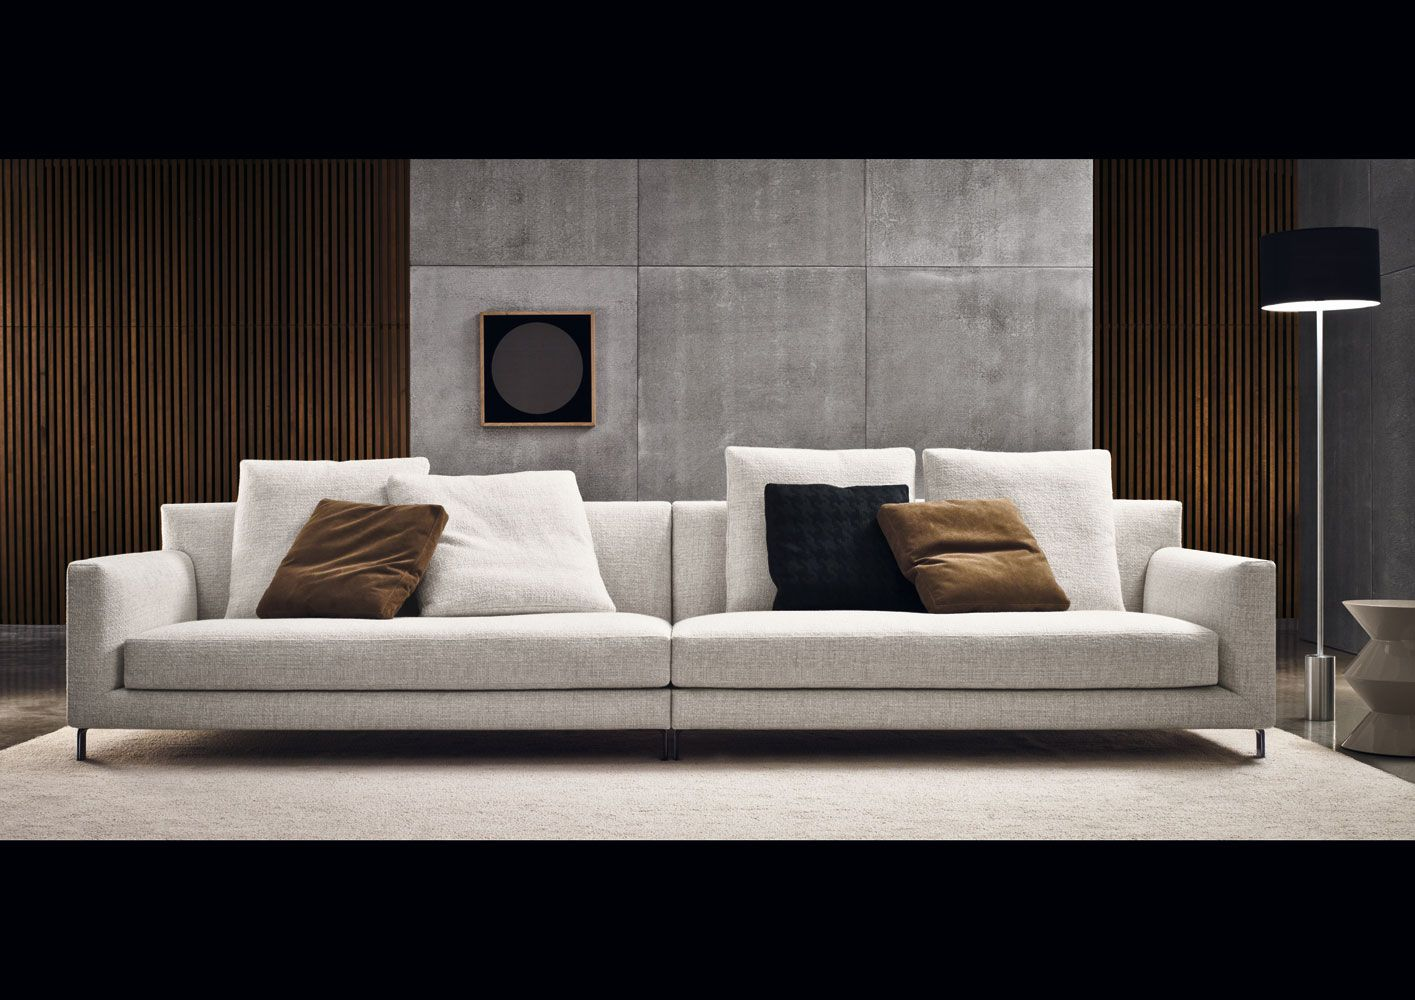 Allen sofa designed by rodolfo dordoni manufactured by minotti switch modern http www Sofa minotti preise